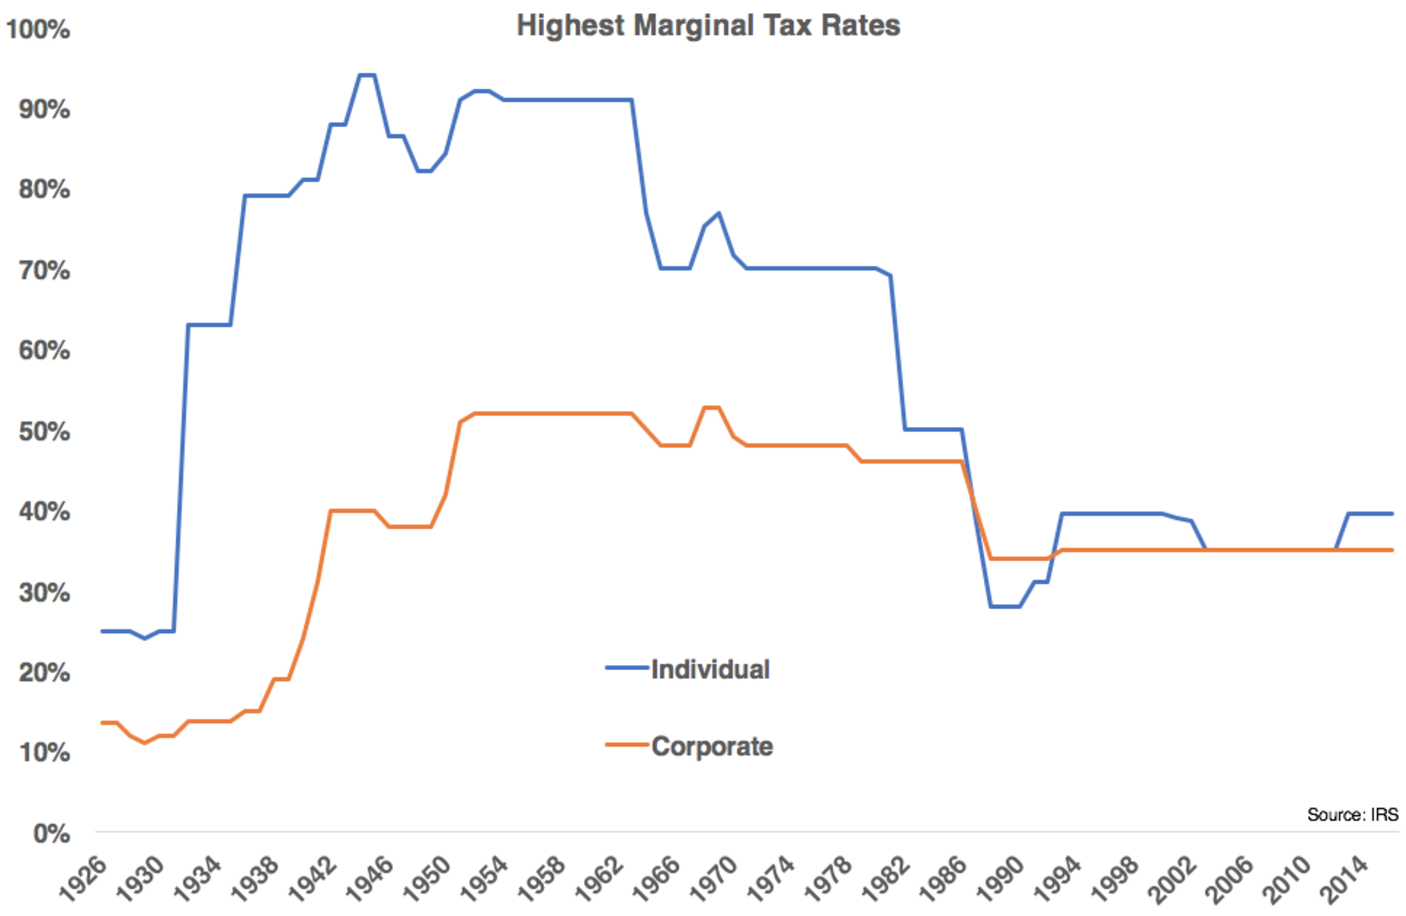 how to work out individual tax using marginal rates